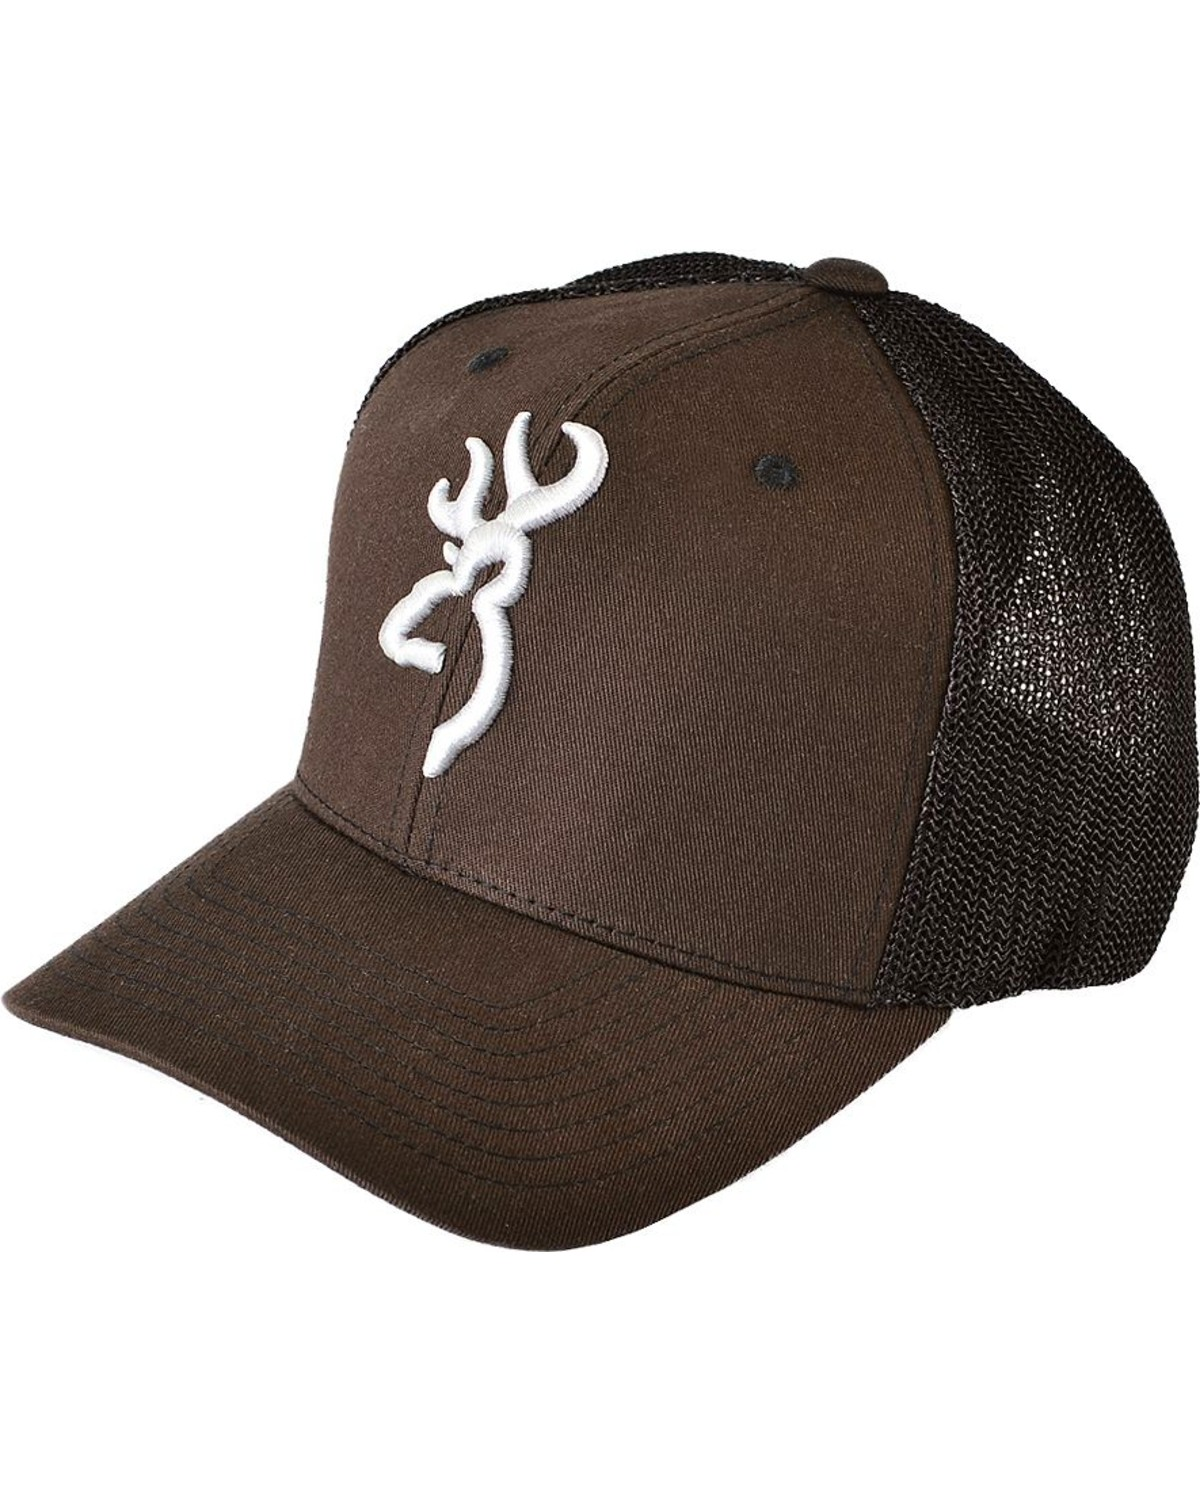 feb539970a6e2c ... discount browning mens embroidered trucker hat brown hi res bad82 c7a87